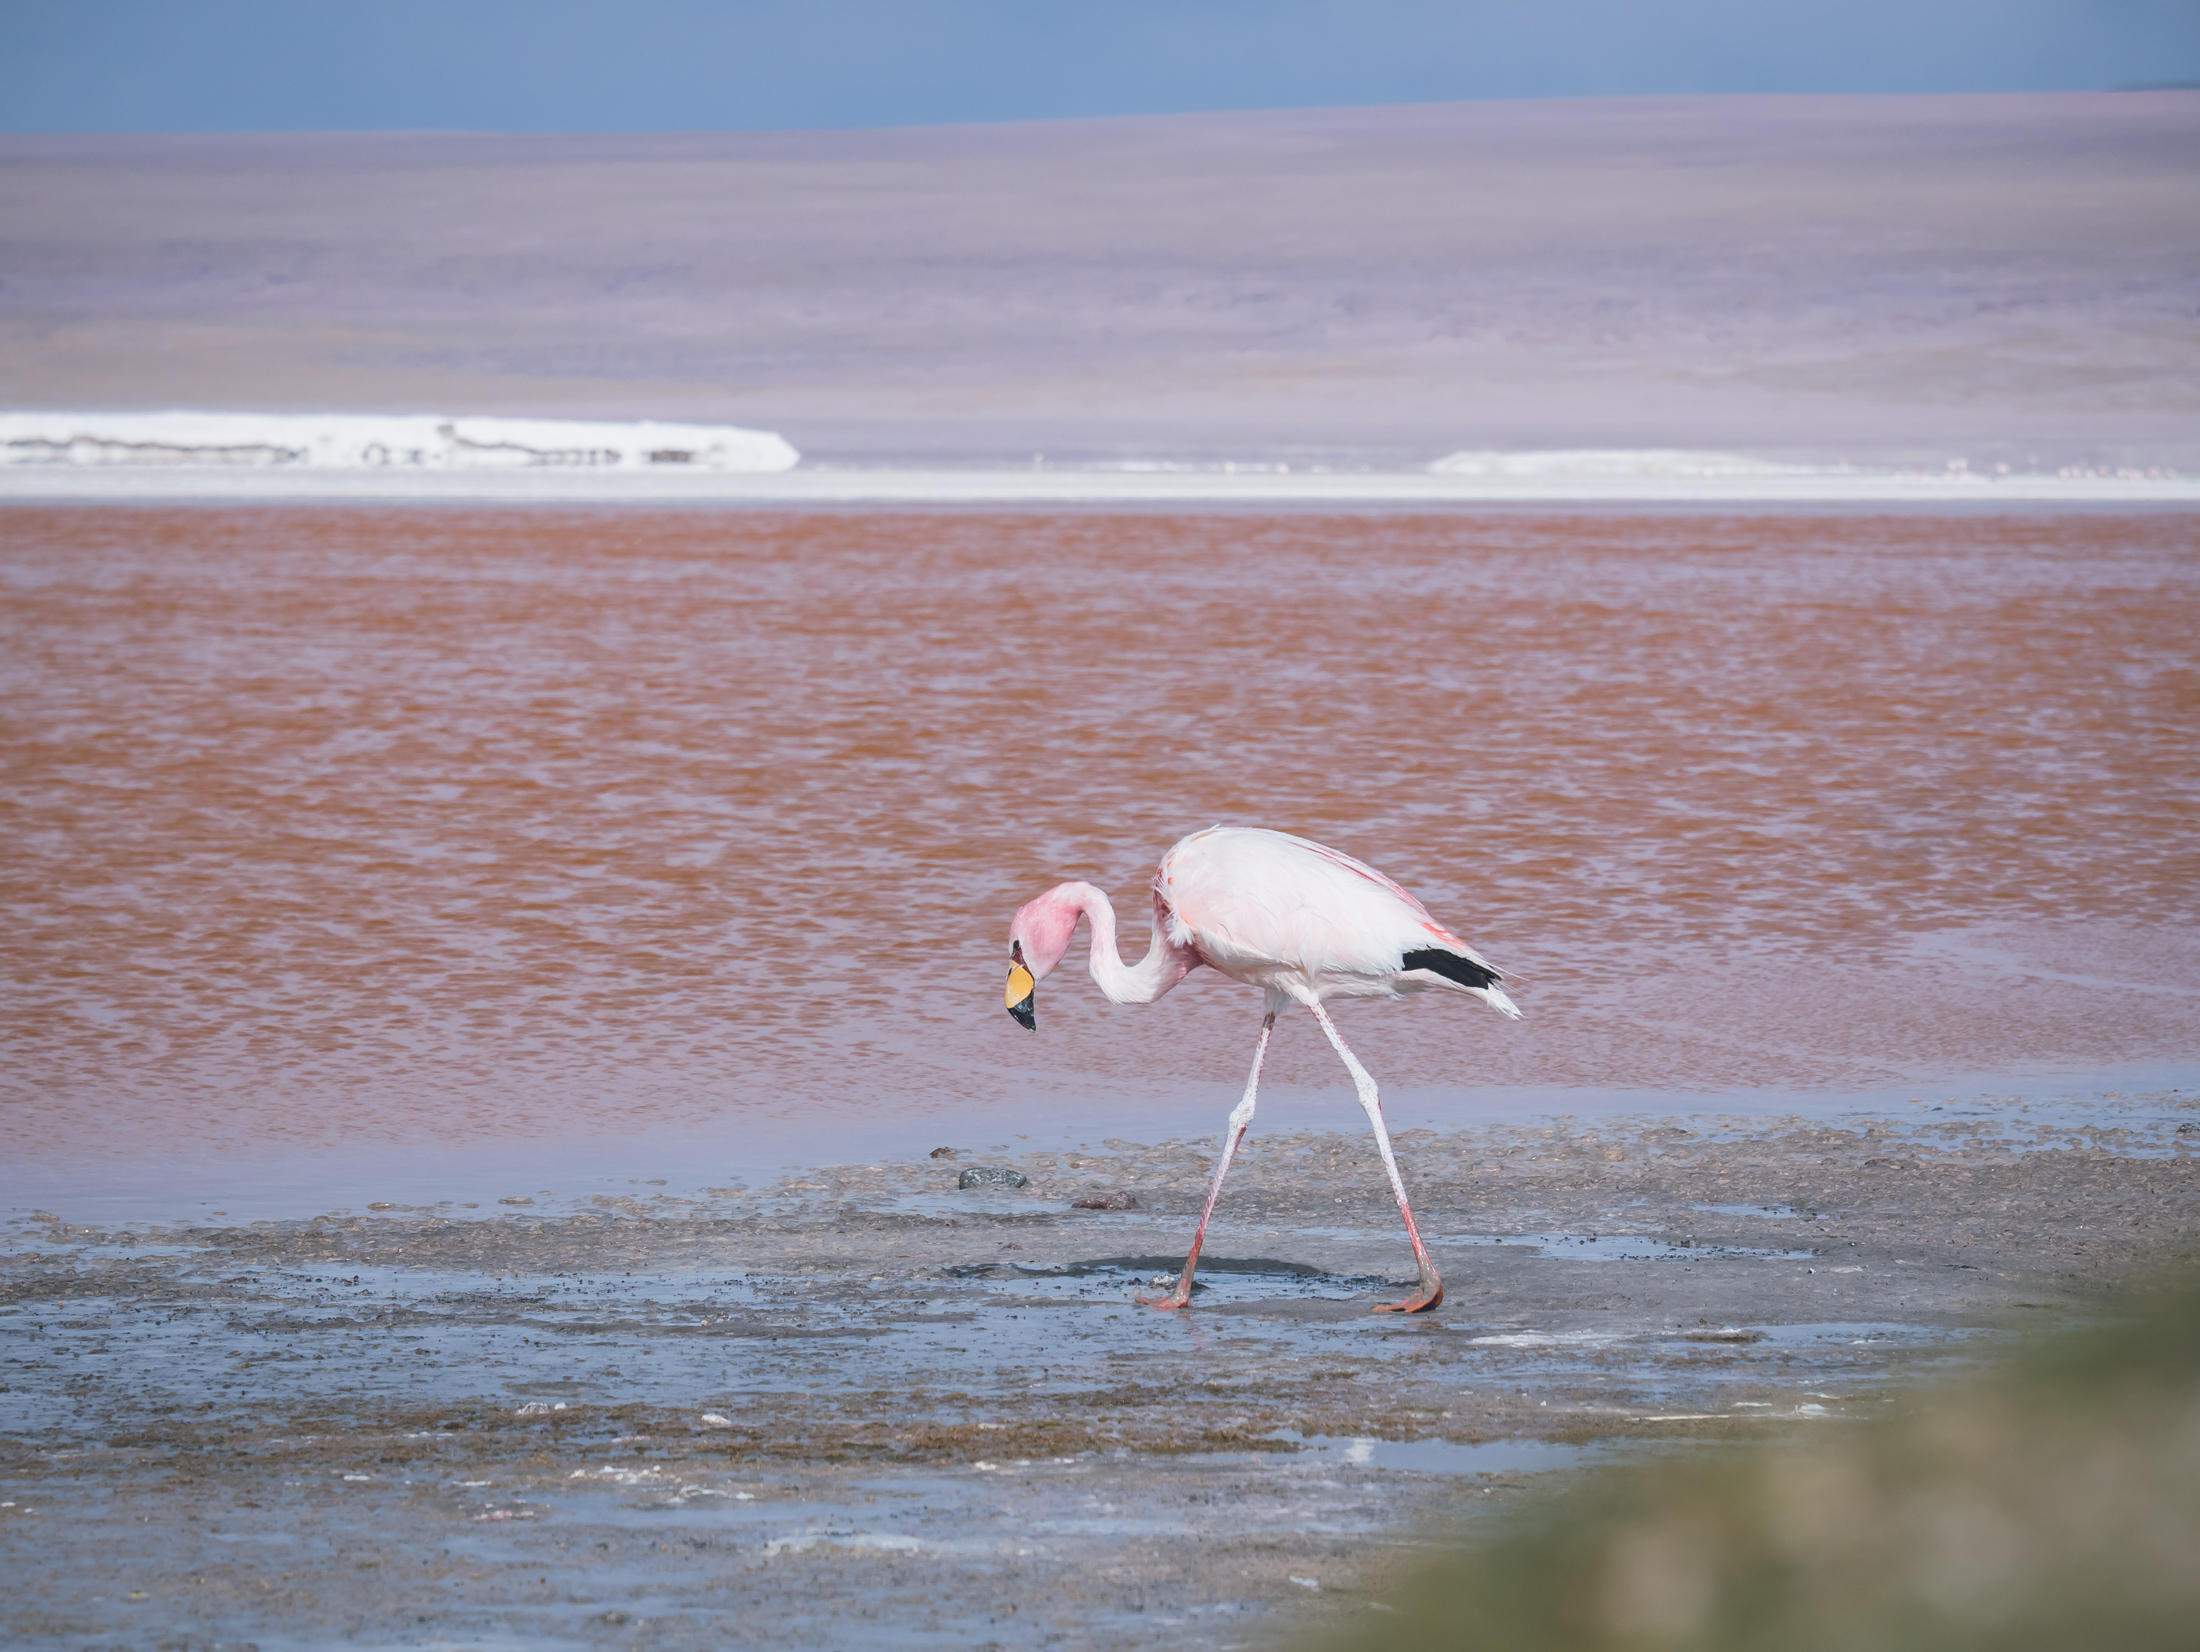 flamand rose lagune bolivie